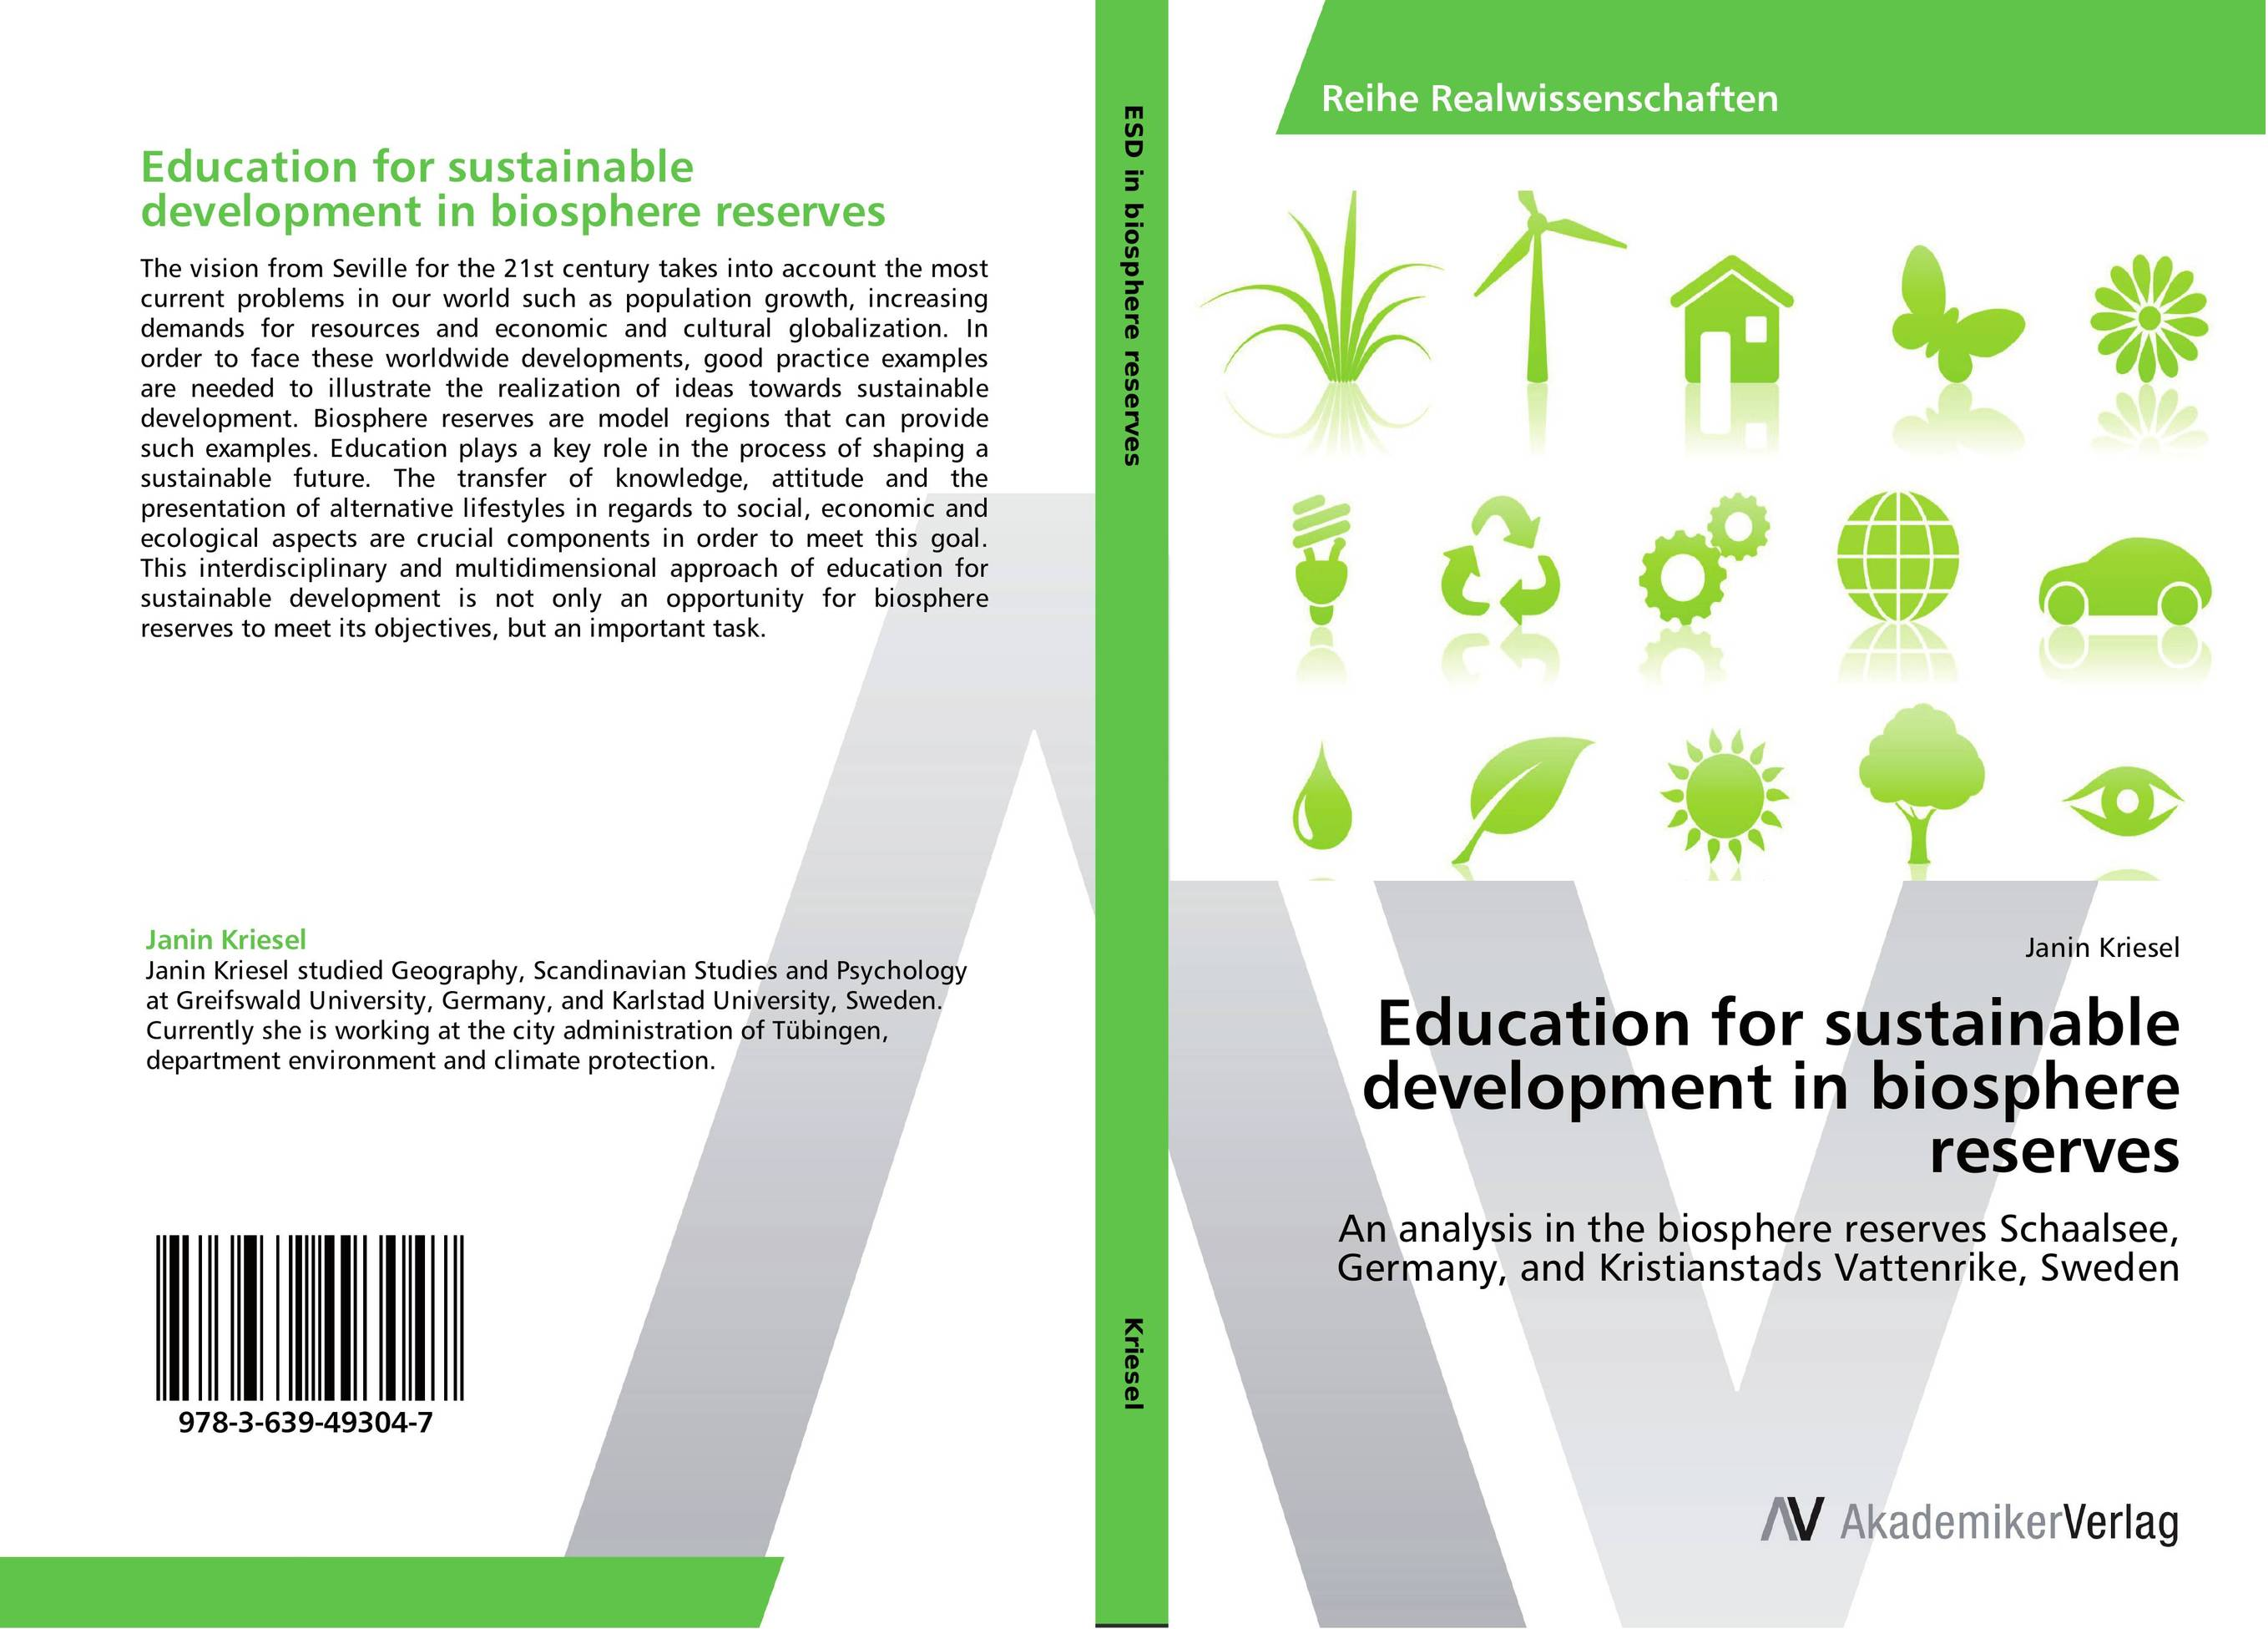 Education for sustainable development in biosphere reserves biotechnology for biofuel renewable and sustainable development